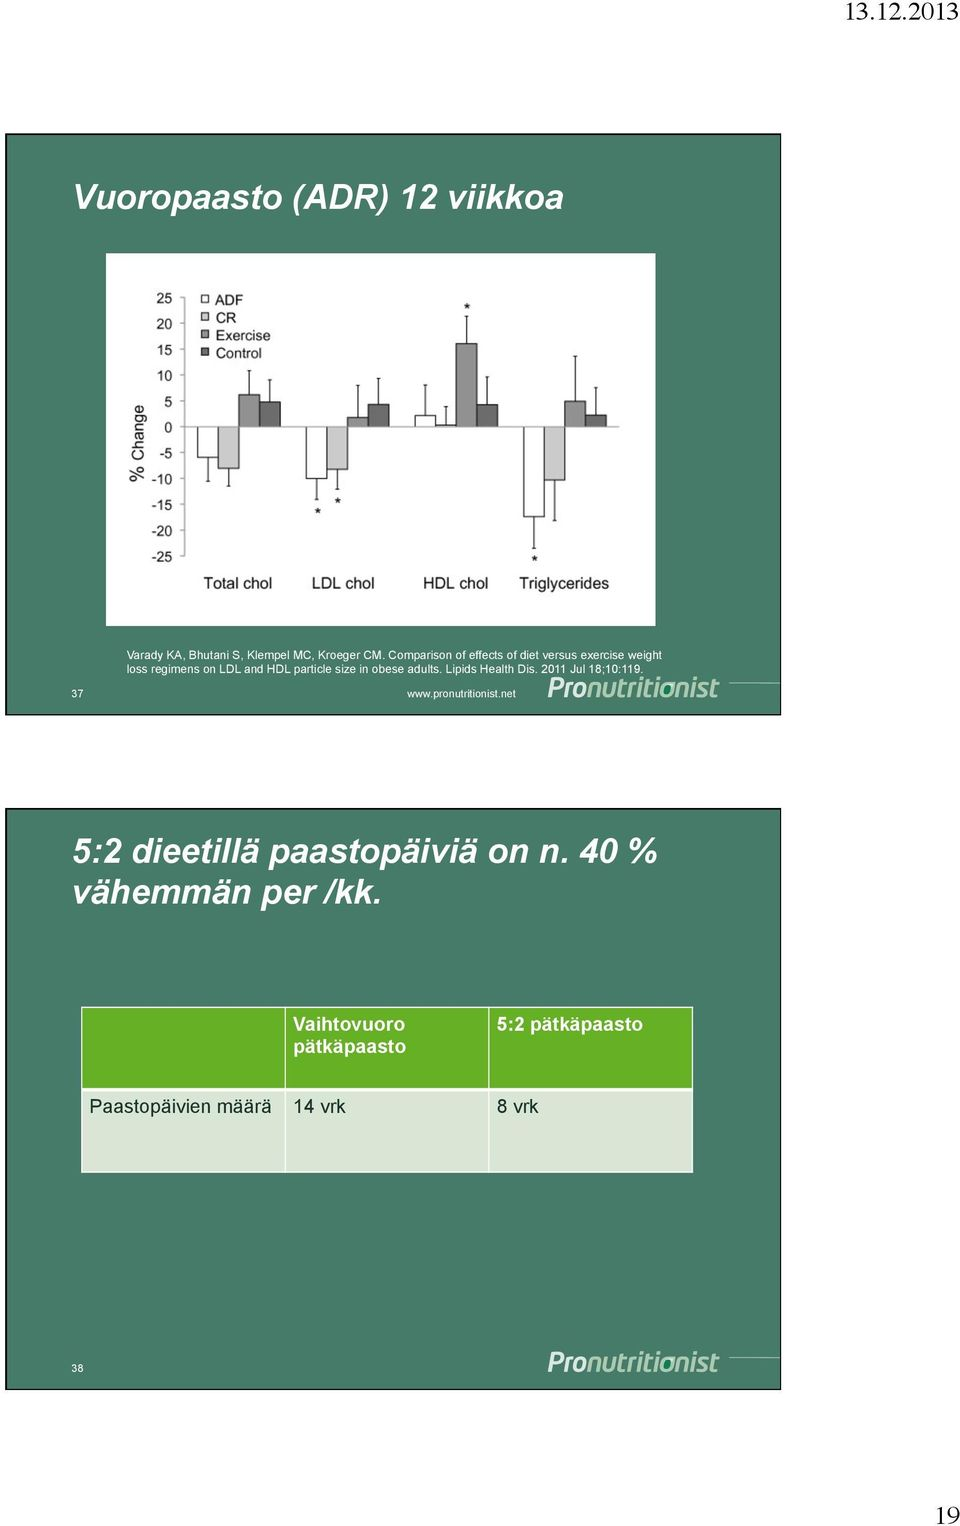 size in obese adults. Lipids Health Dis. 2011 Jul 18;10:119.